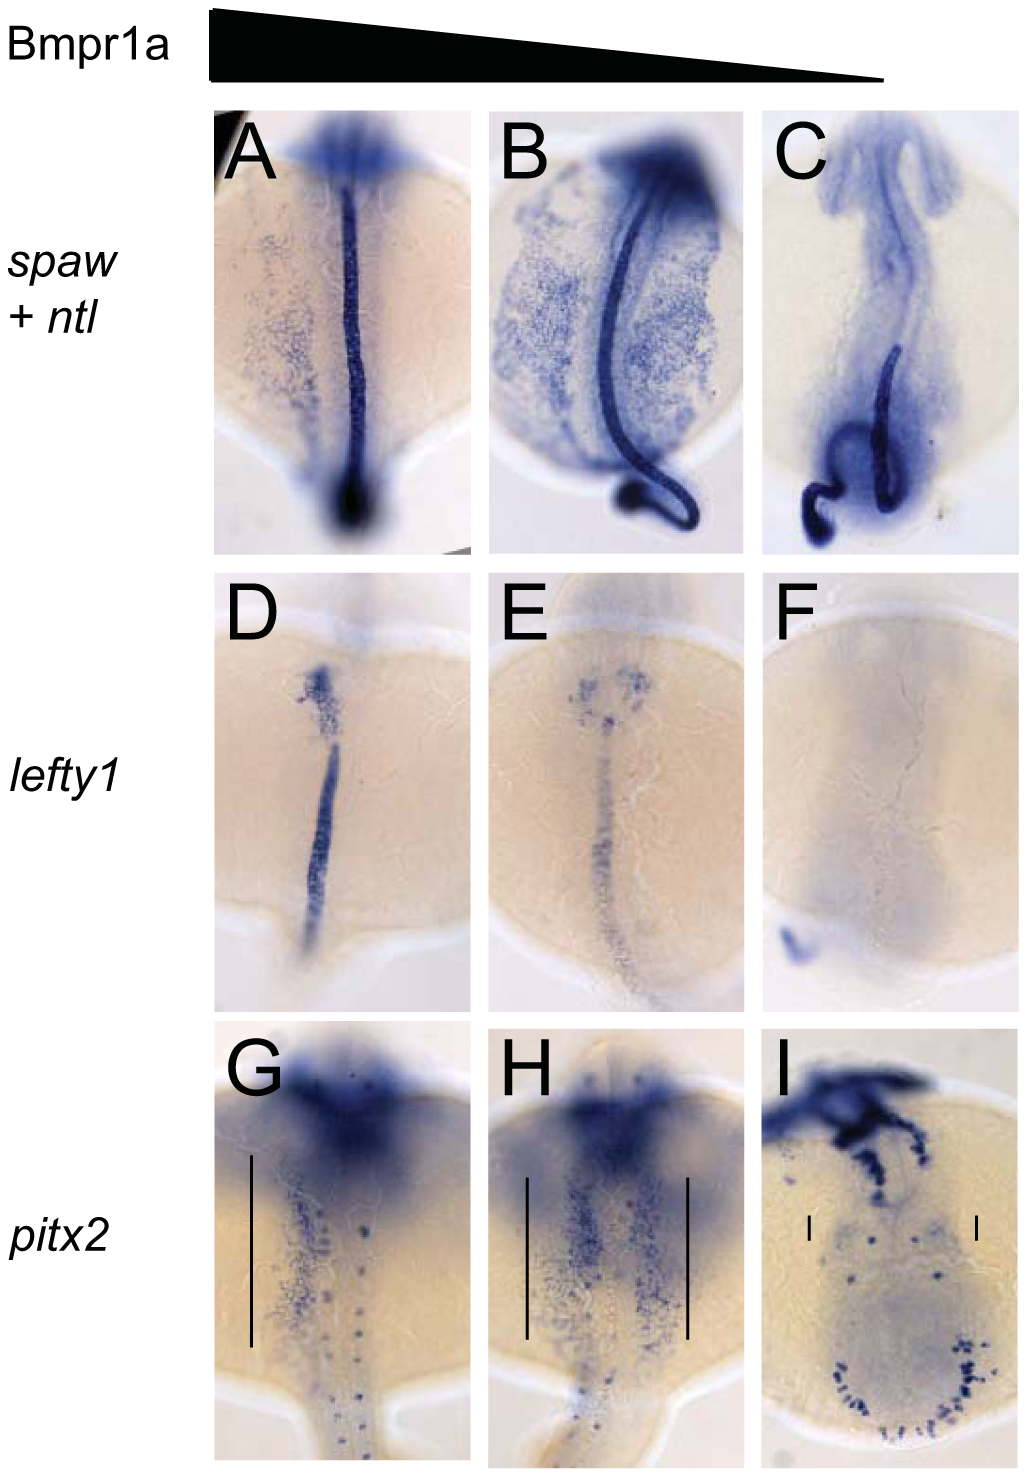 Dose-dependent effect of Bmpr1a on the expression of laterality genes.